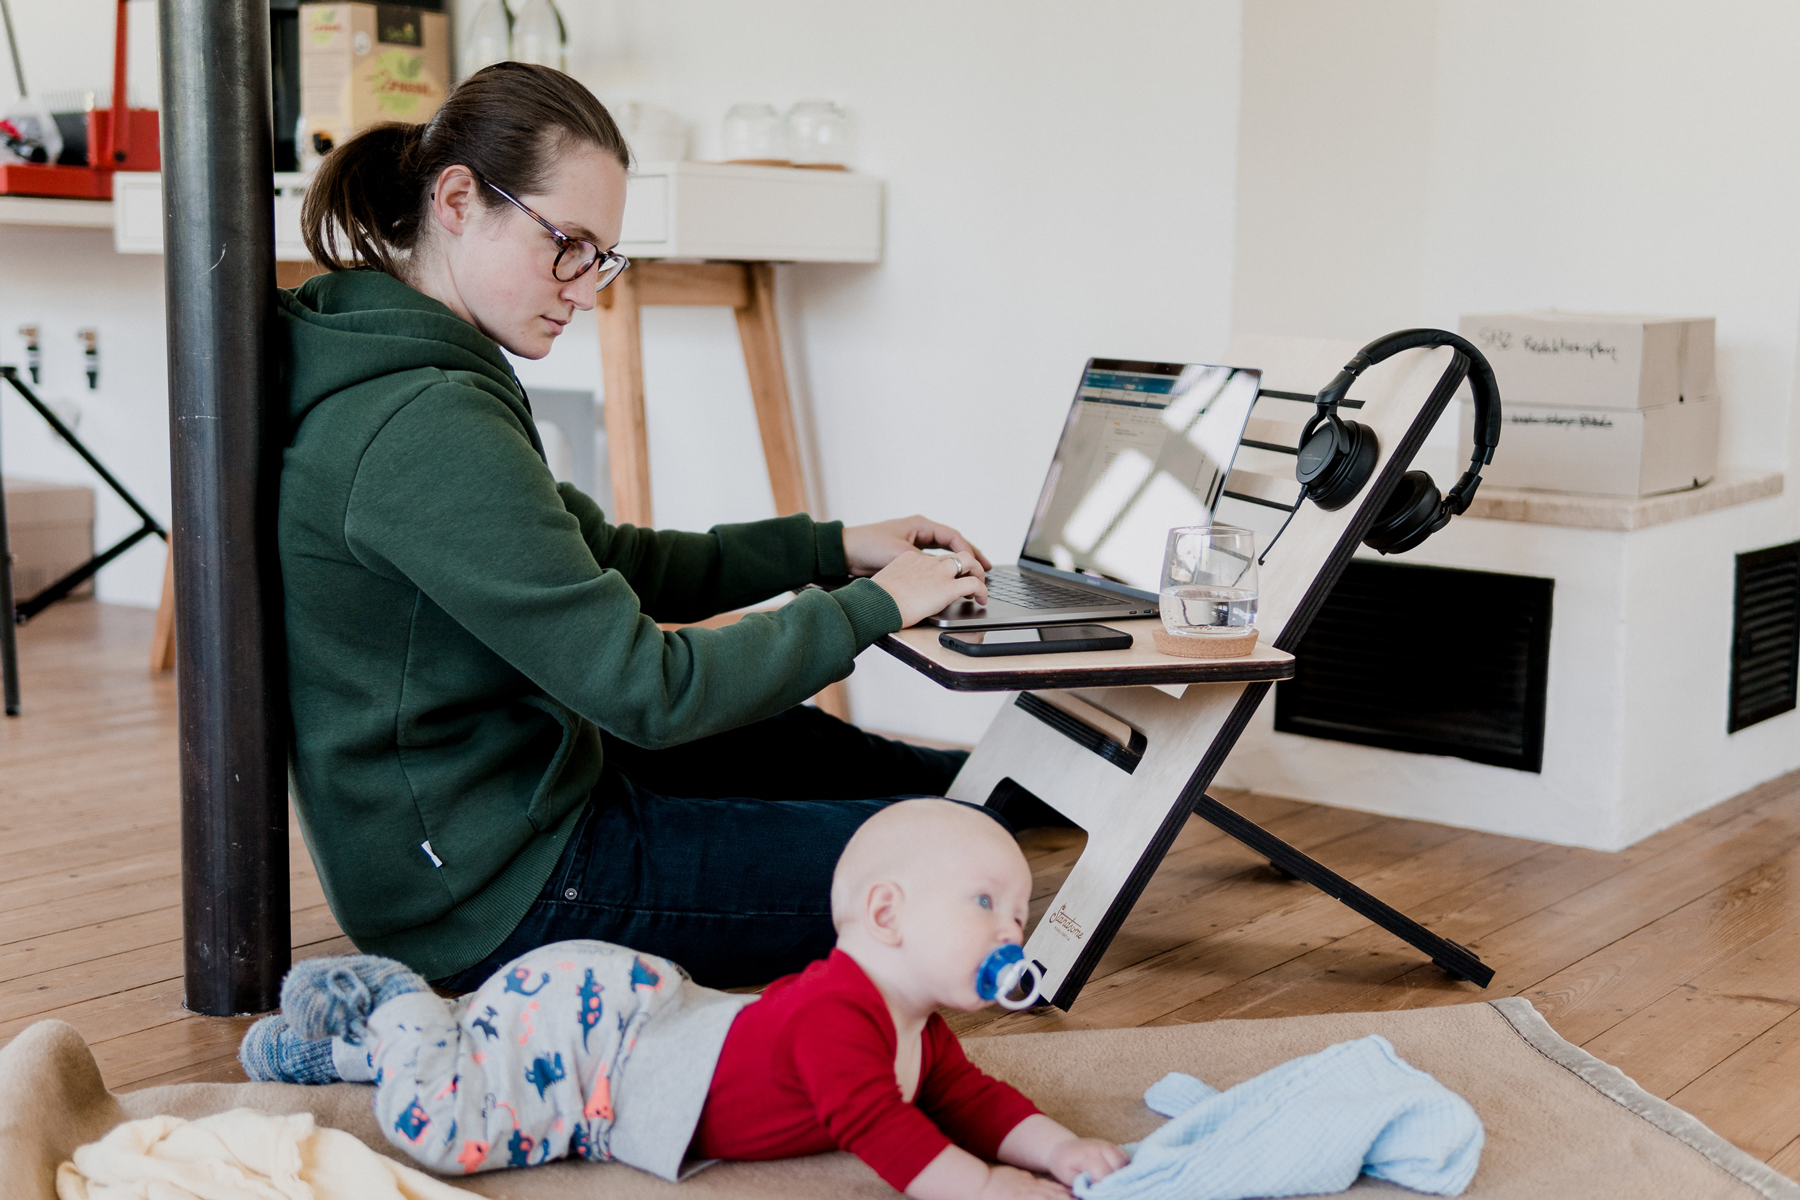 Woman working from home with baby by her side - Credit to @standsome, image supplied via Unsplash